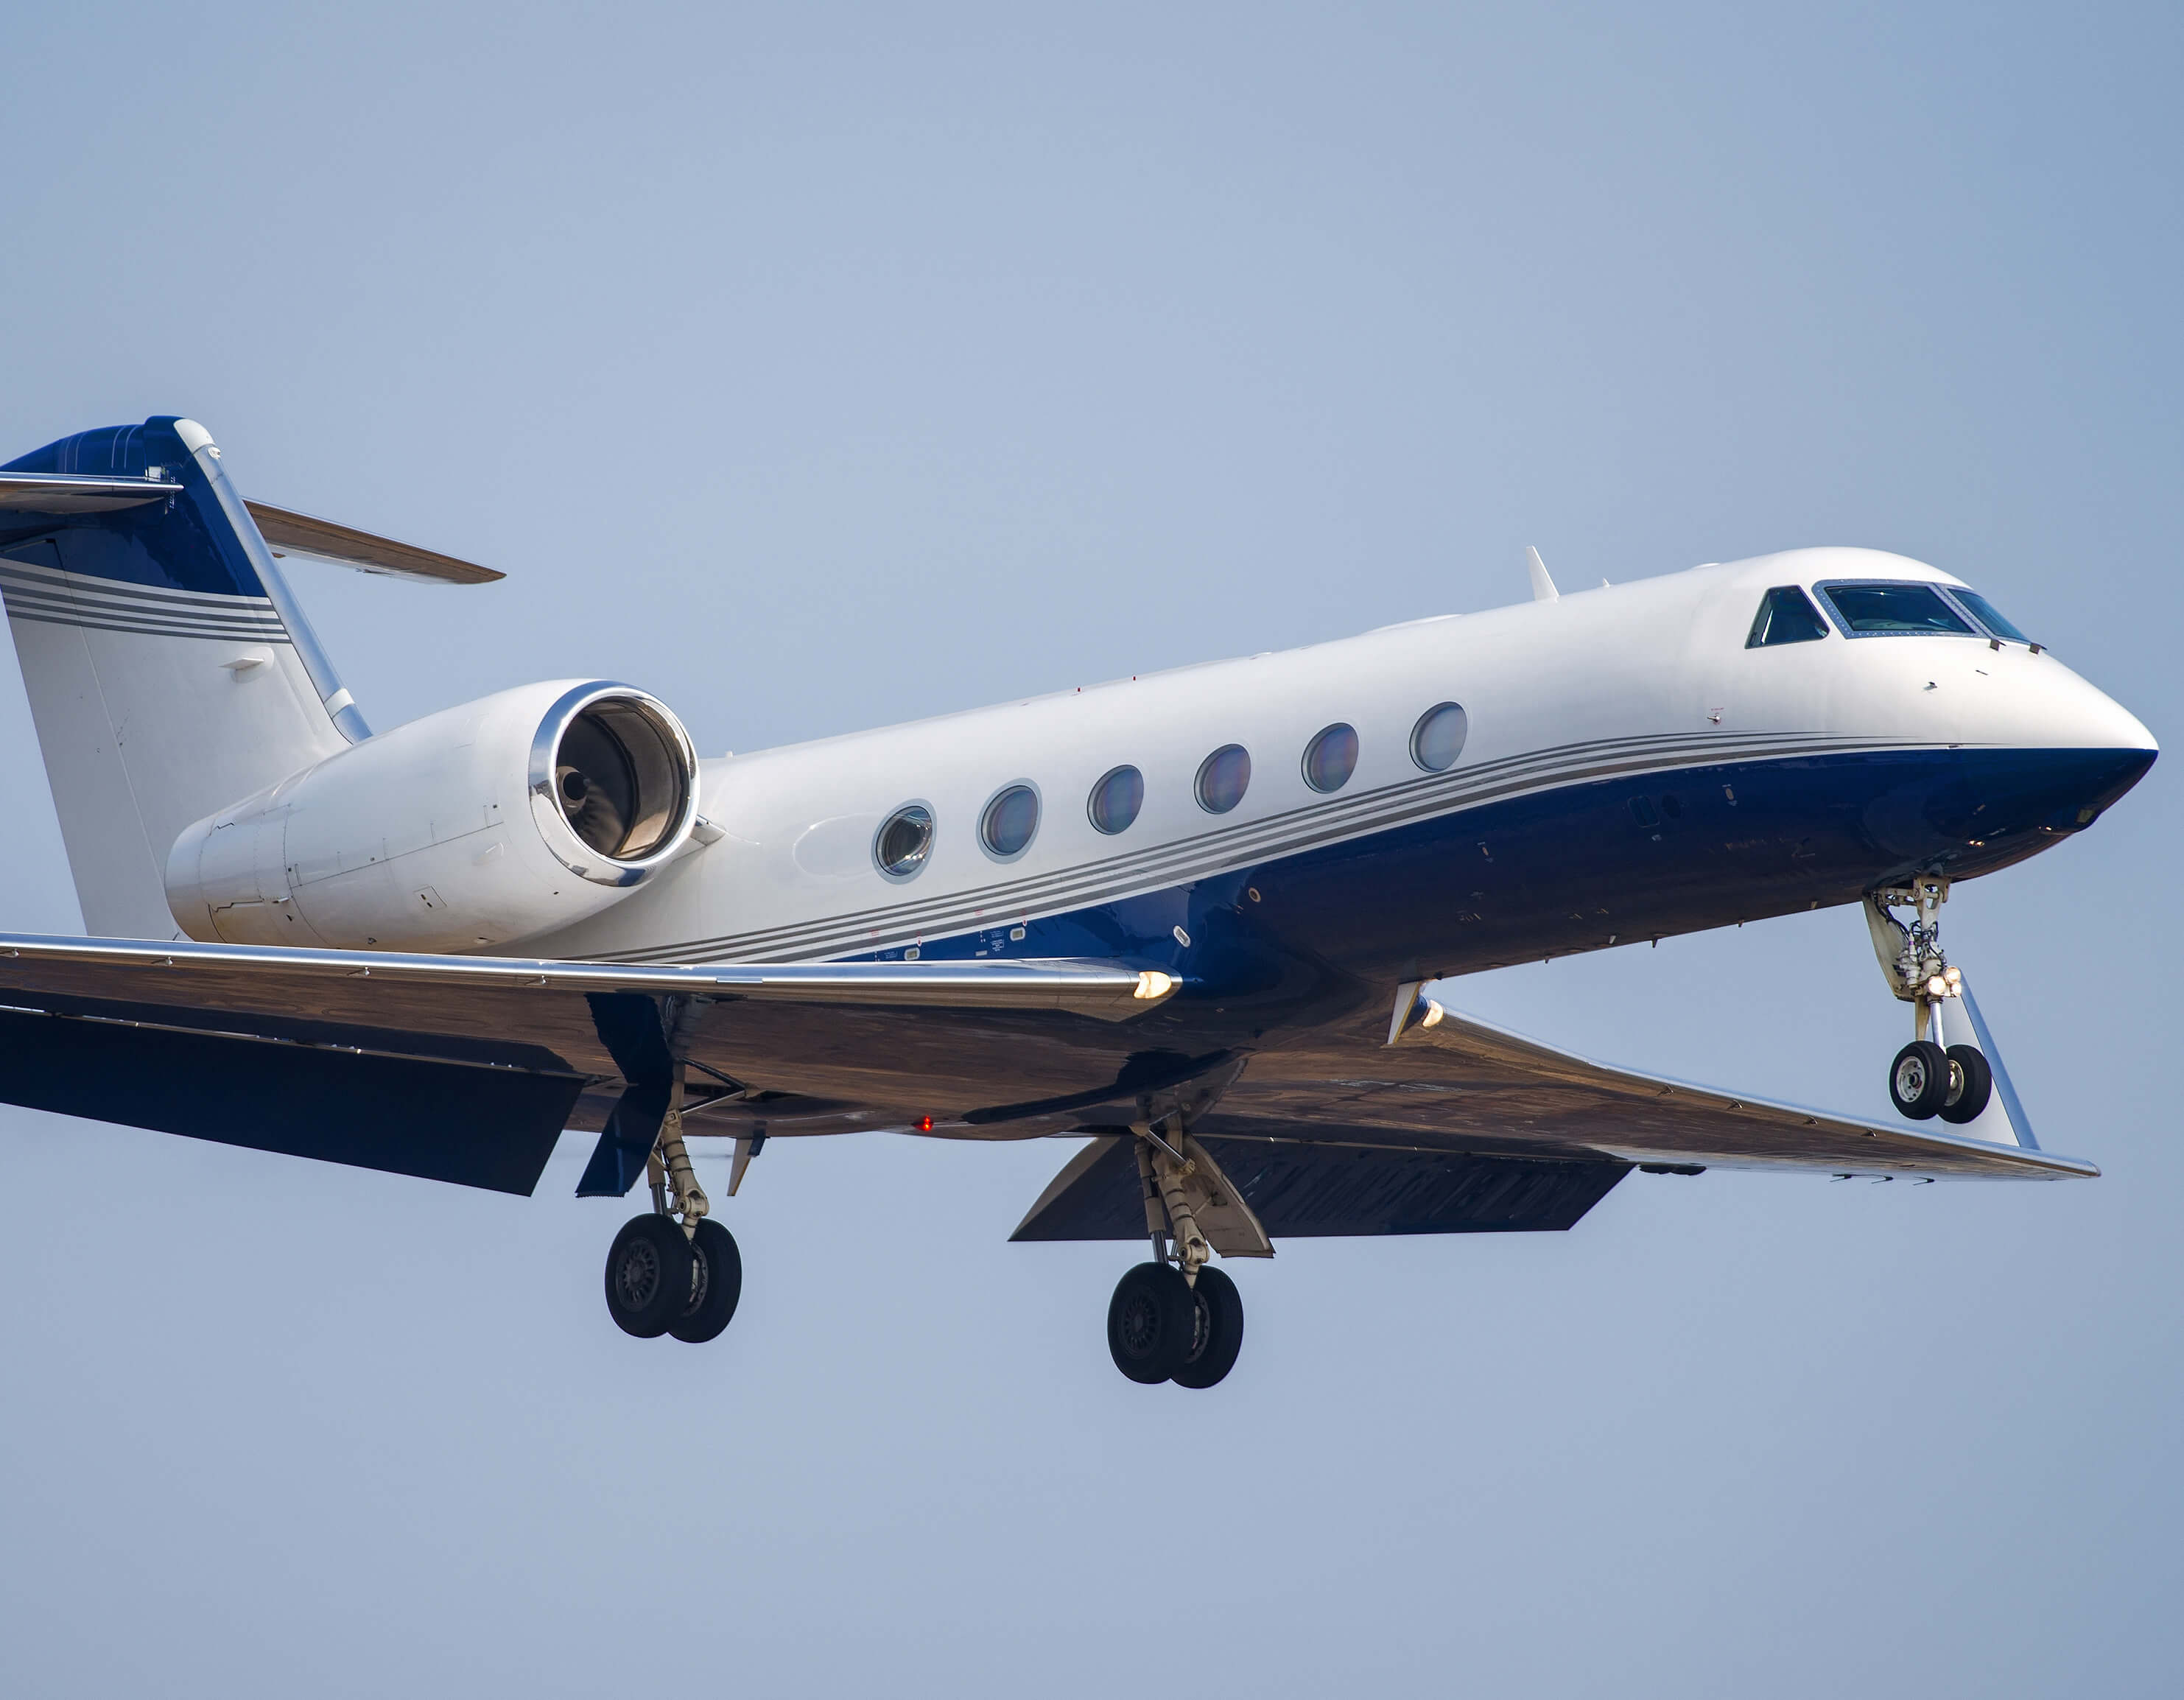 Gulfstream business jet on approach rx sq